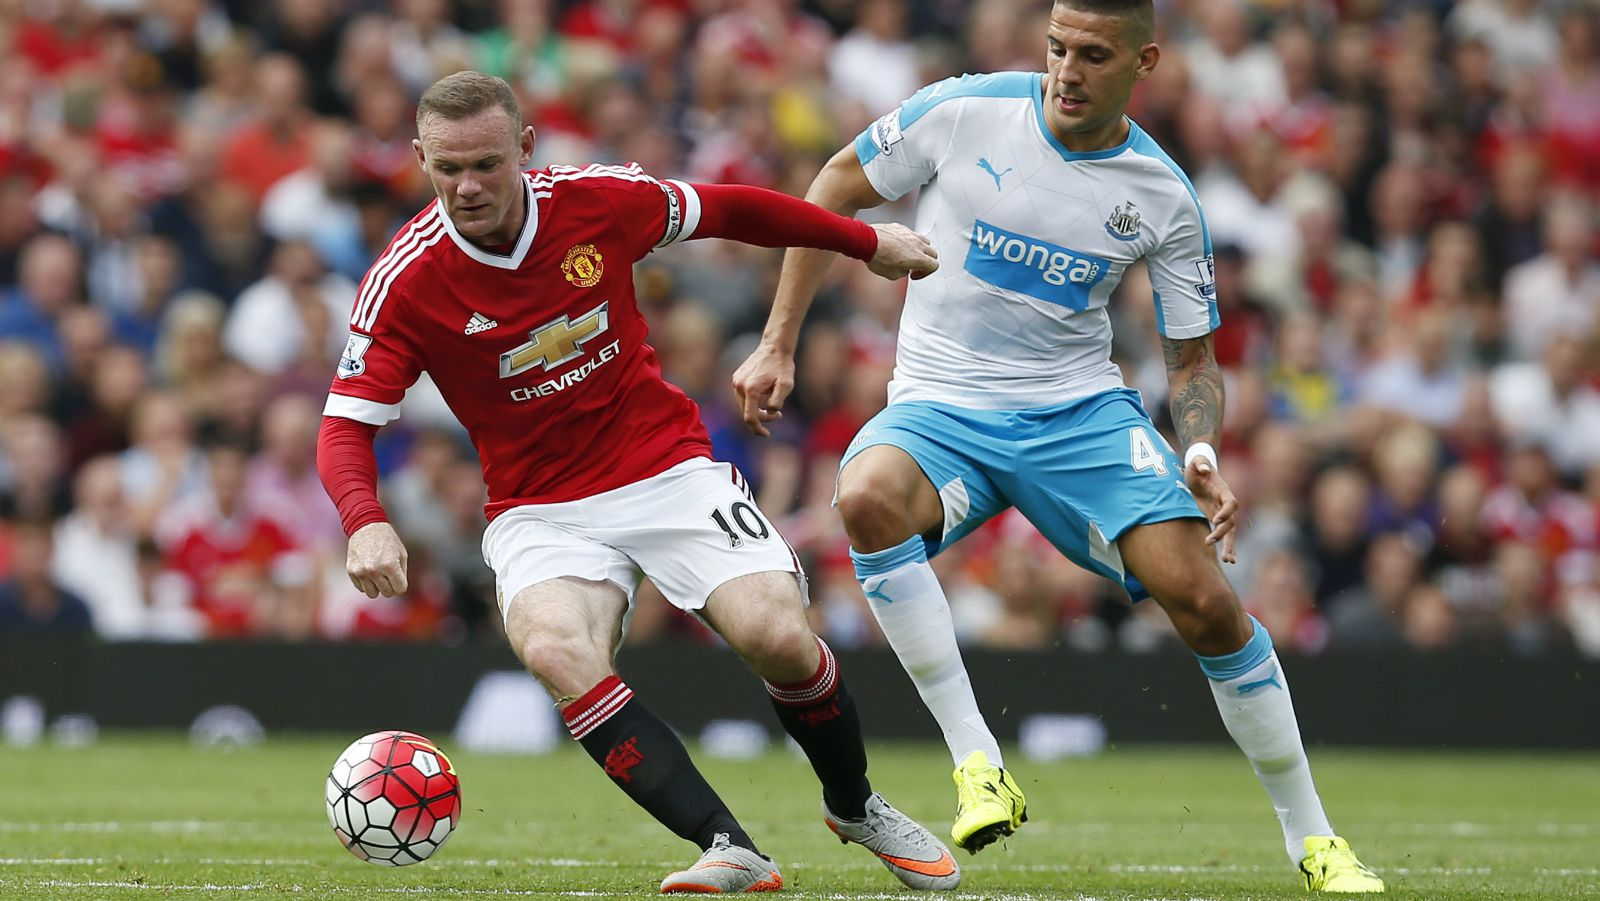 ootball - Manchester United v Newcastle United - Barclays Premier League - Old Trafford - 22/8/15 Manchester United's Wayne Rooney in action with Newcastle United's Aleksandar Mitrovic